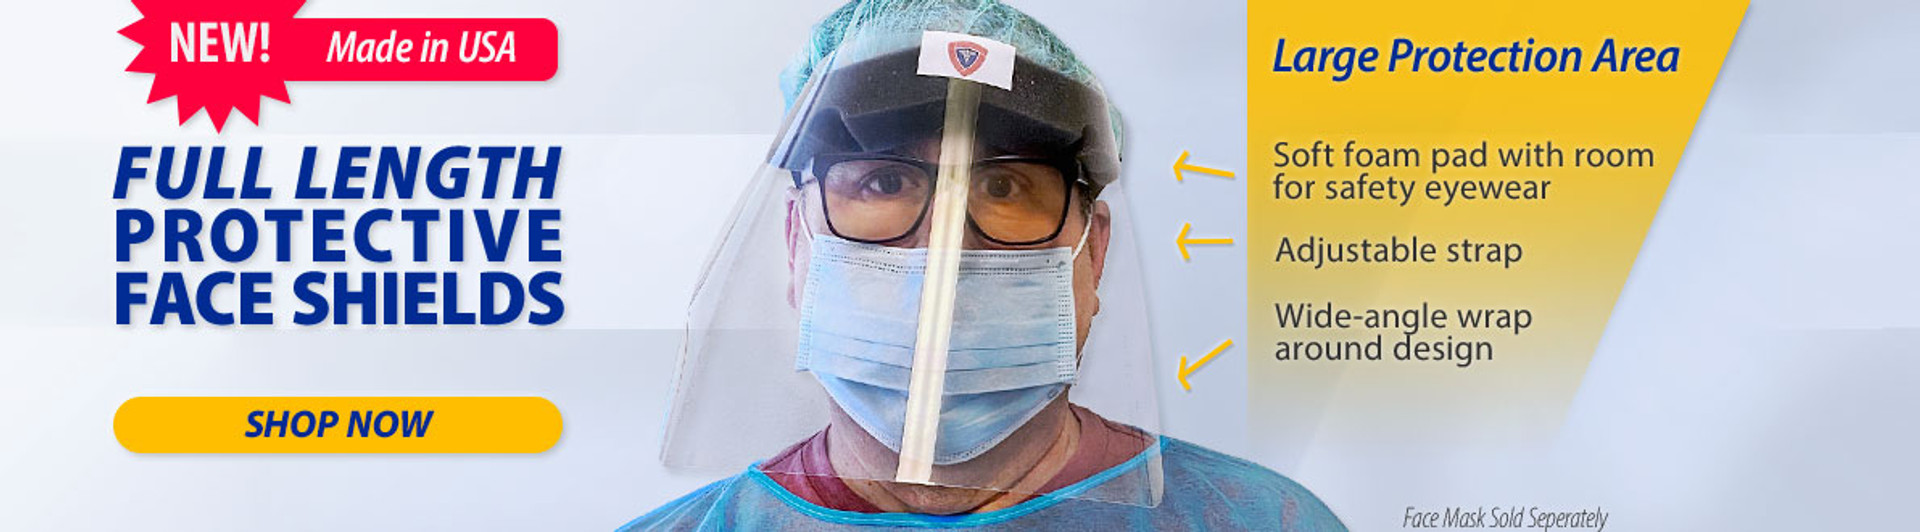 Full Length Protective Face Shields